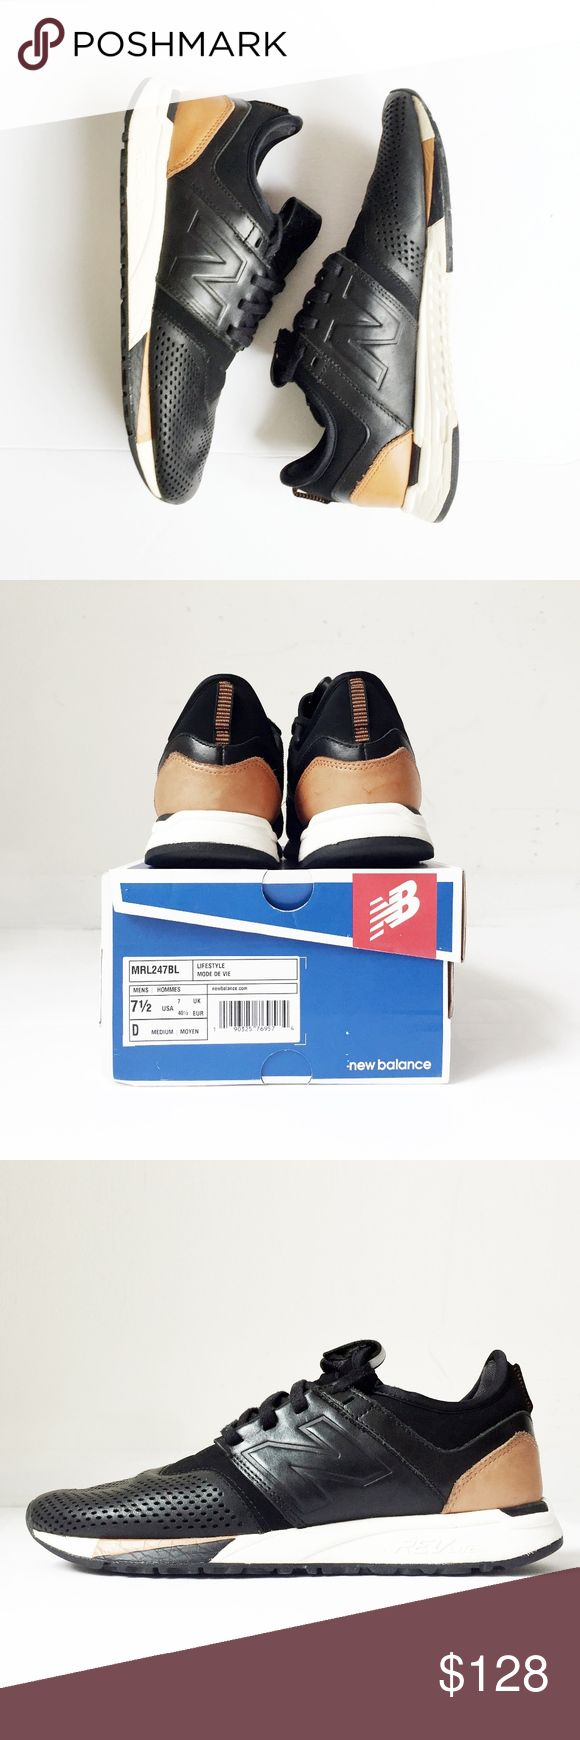 NEW BALANCE MRL247BL LUXE pack black shoes men 7.5 NEW BALANCE  MRL247BL Luxe  sold out.   men's 7.5 black, white, tan.  light wear, scuffing, creasing. inspect photos. professionally cleaned + disinfected.  comes in its original box. I do not sell inauthentic items.  high tops adidas running sneakers basketball nike leather air jordan retro mid running athletic training trainer yeezy flyknit kanye 350 y3 jeremy scott flight club hypebeast sneaker head collector's goat skate sb skateboard…